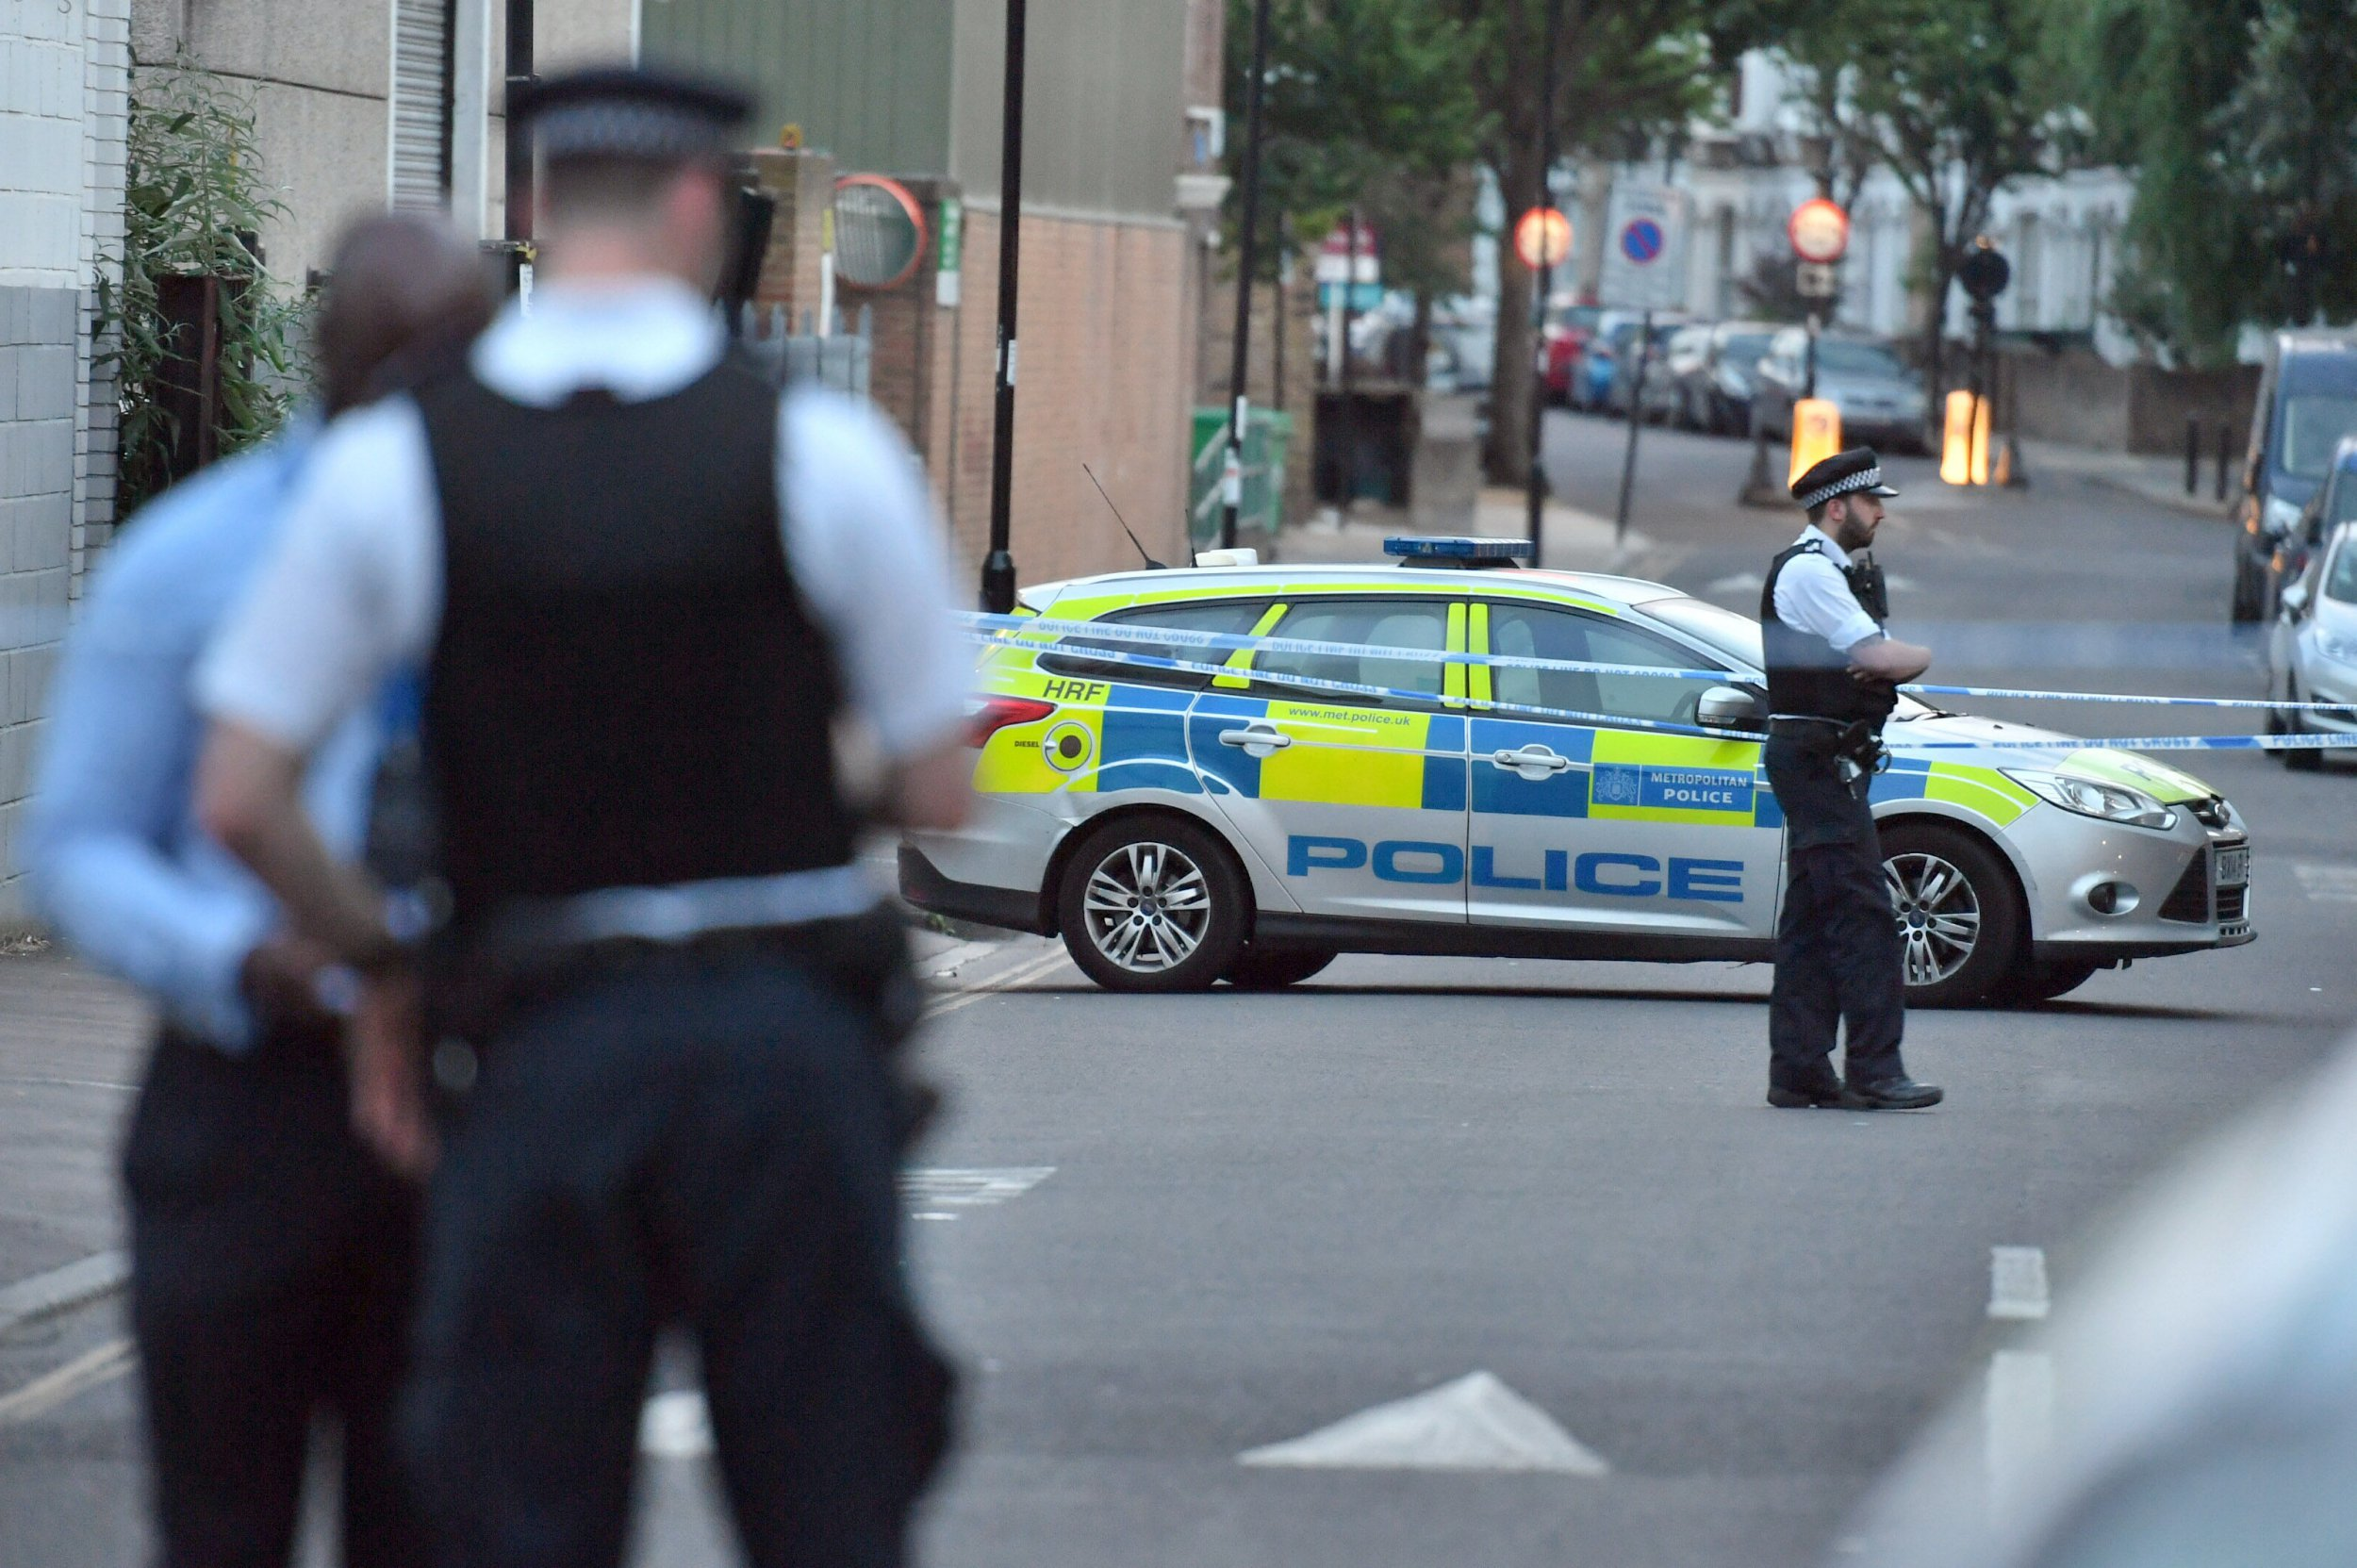 The scene in Fairbridge Road near Archway, north London after a 14 year old boy was found with multiple stab wounds. An 11-year-old boy has been arrested on suspicion of attempted murder. PRESS ASSOCIATION Photo. Picture date: Sunday July 1, 2018. See PA story POLICE Archway. Photo credit should read: John Stillwell/PA Wire